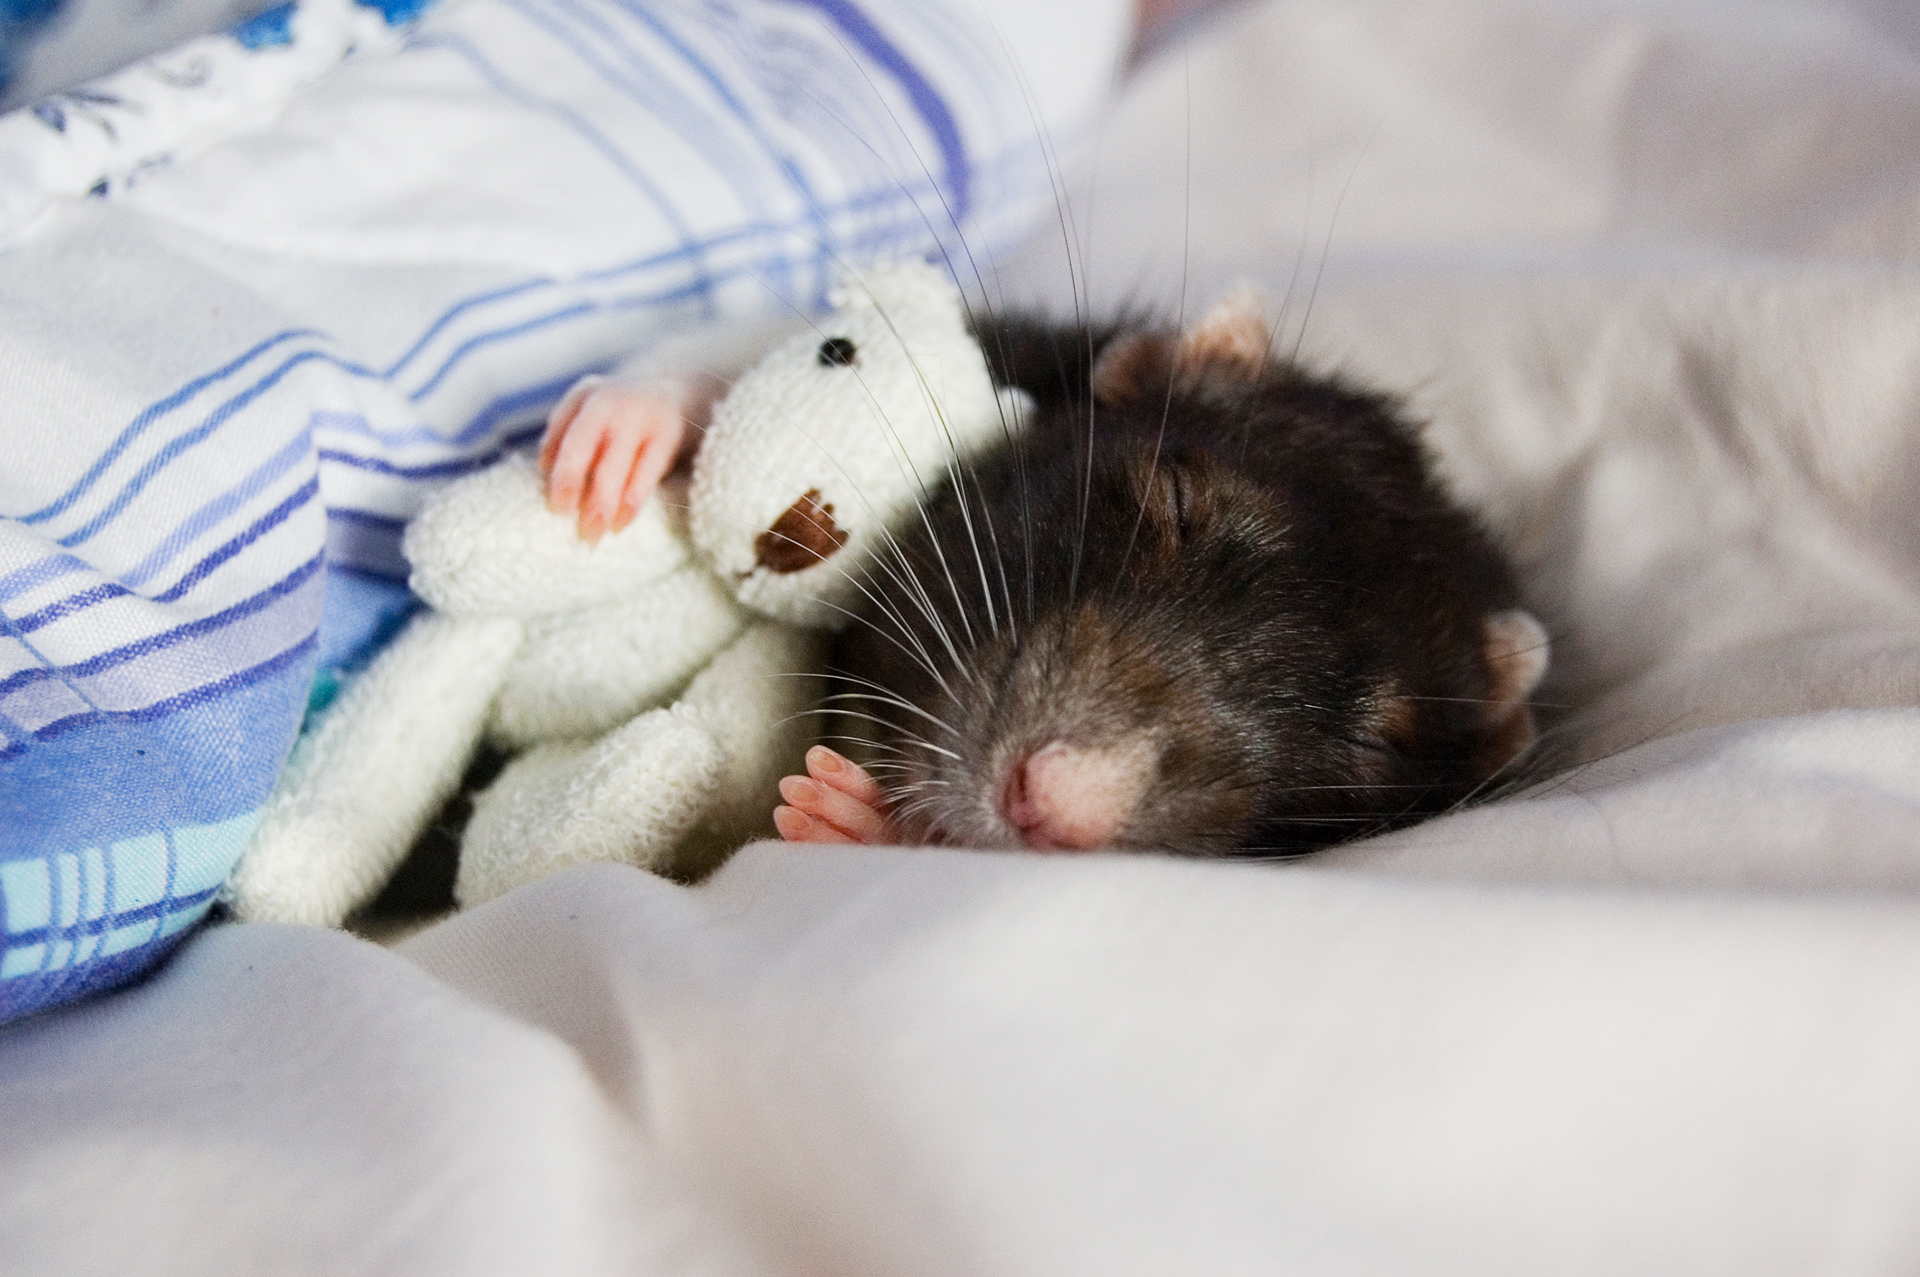 Photo of a sleeping rat with a teddy bear